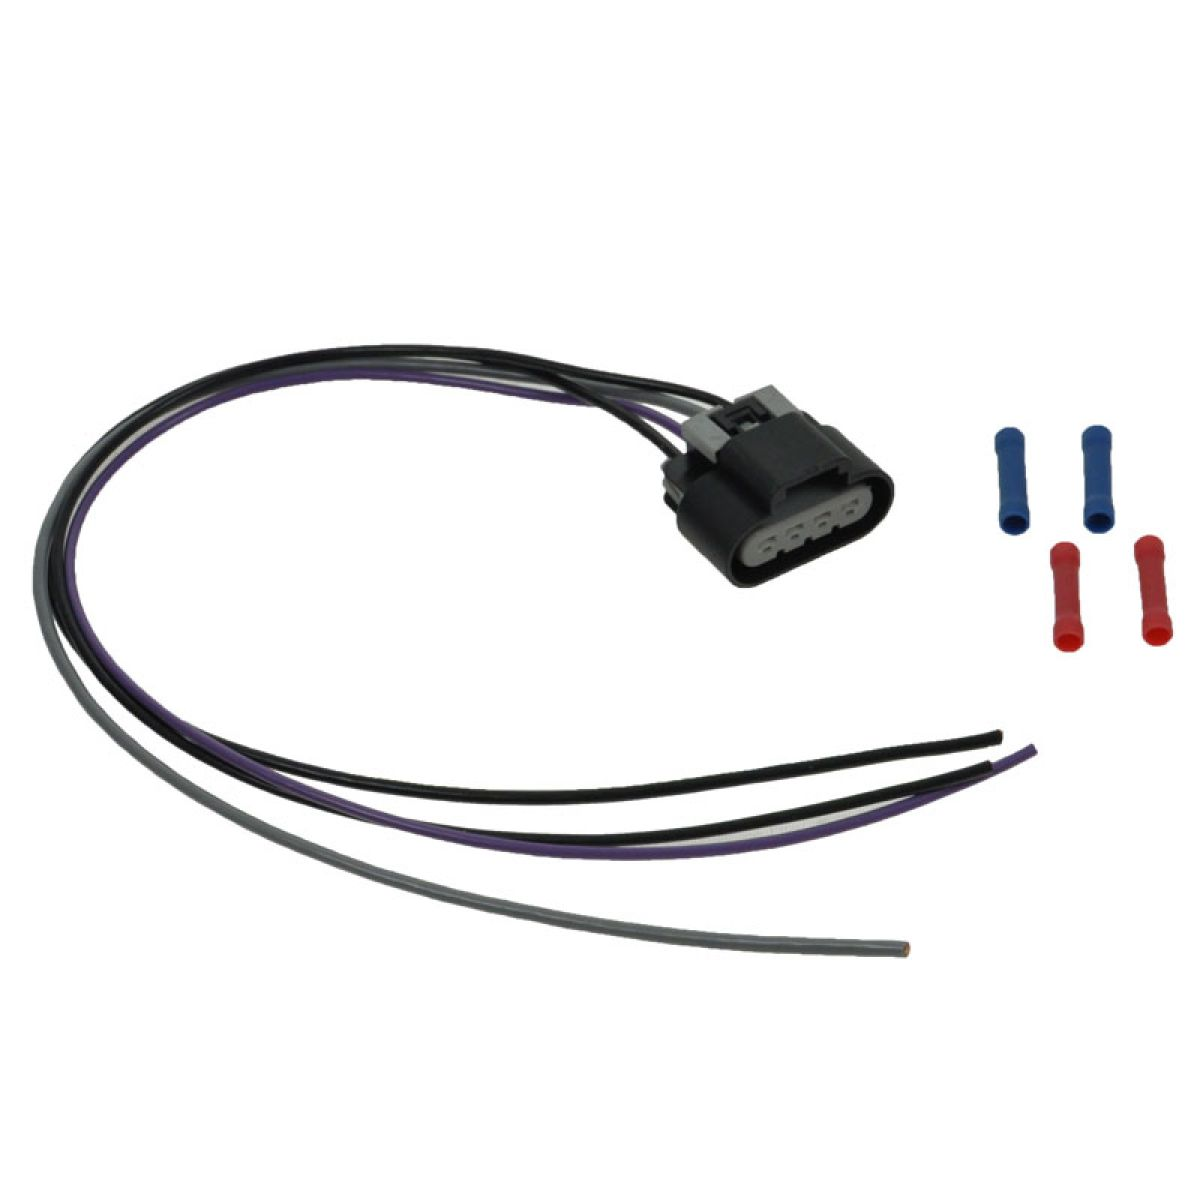 Details about Fuel Pump Wiring Harness with Oval Connector 4 Wire Pigtail on gmc 4x4 trucks, gmc basic trucks, gmc touring trucks, gmc prerunner trucks, gmc luxury trucks, gmc sle trucks, gmc ford trucks, gmc hybrid trucks, gmc v10 trucks, gmc v16 trucks, gmc diesel trucks,